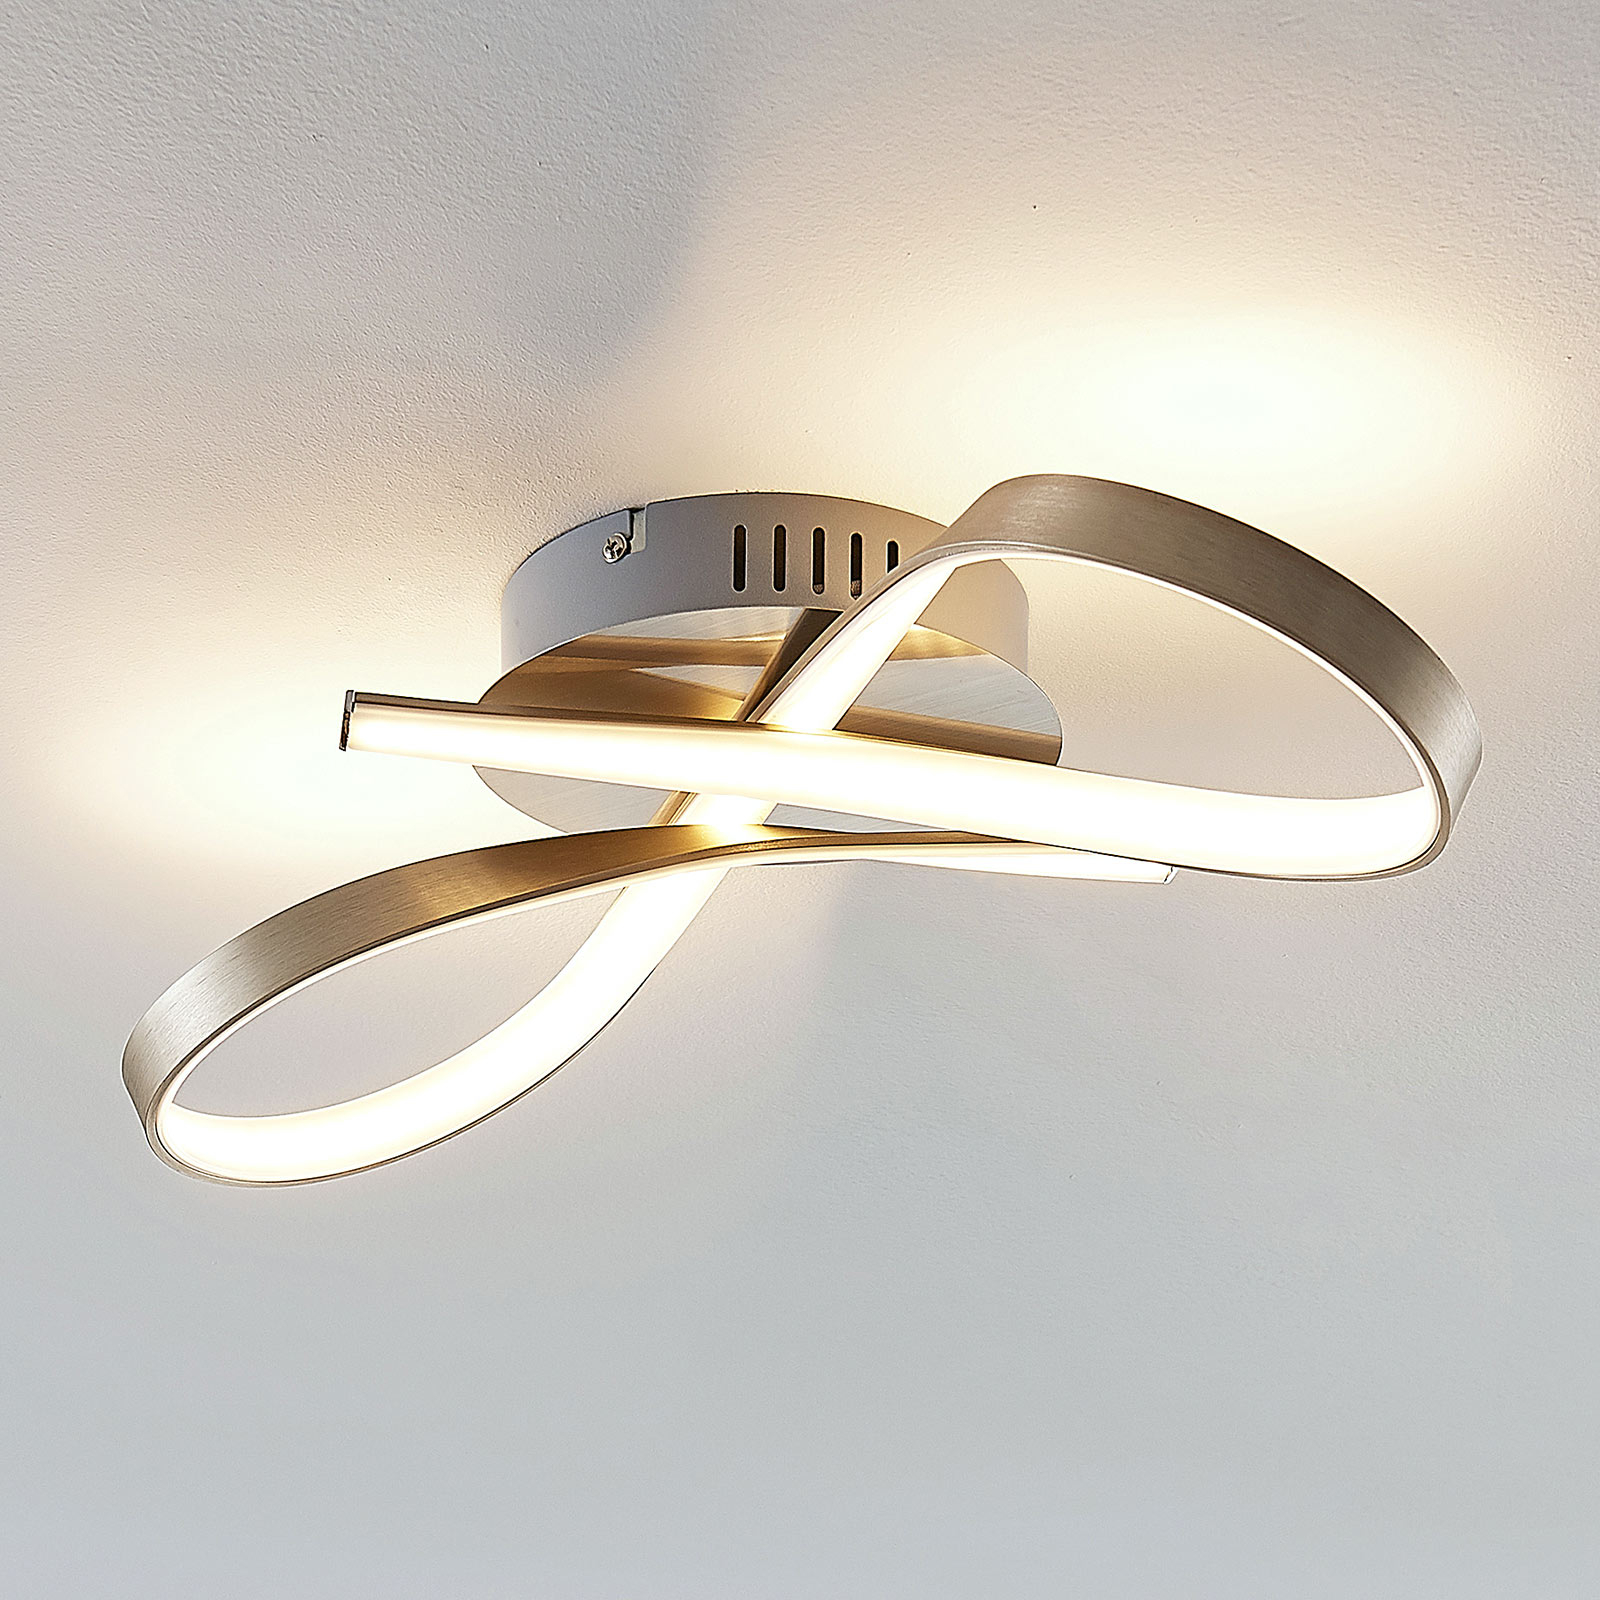 LED plafondlamp Arlana in lusvorm